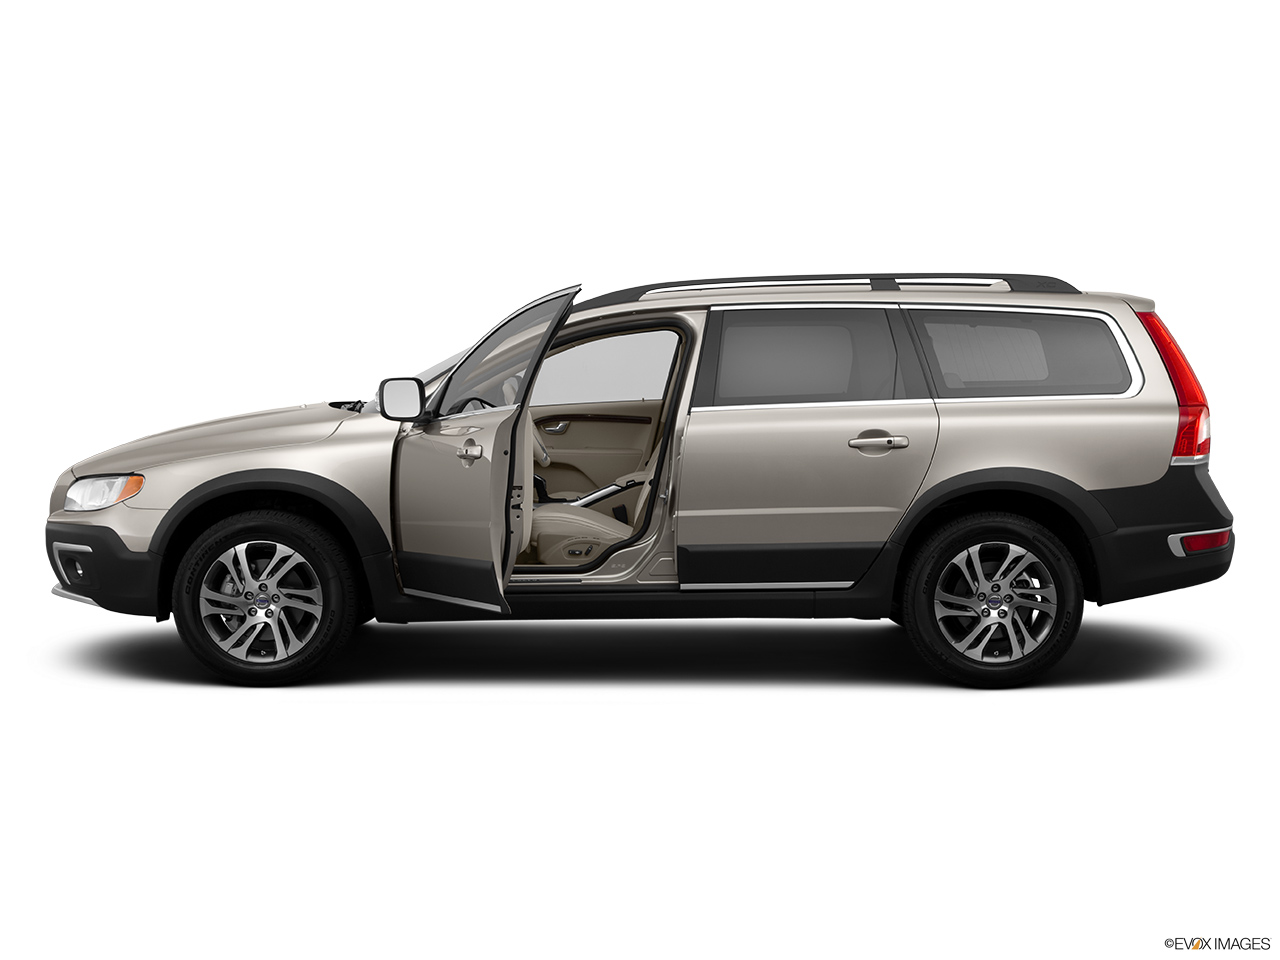 2014 Volvo XC70 3.2 AWD Premier Plus Driver's side profile with drivers side door open.